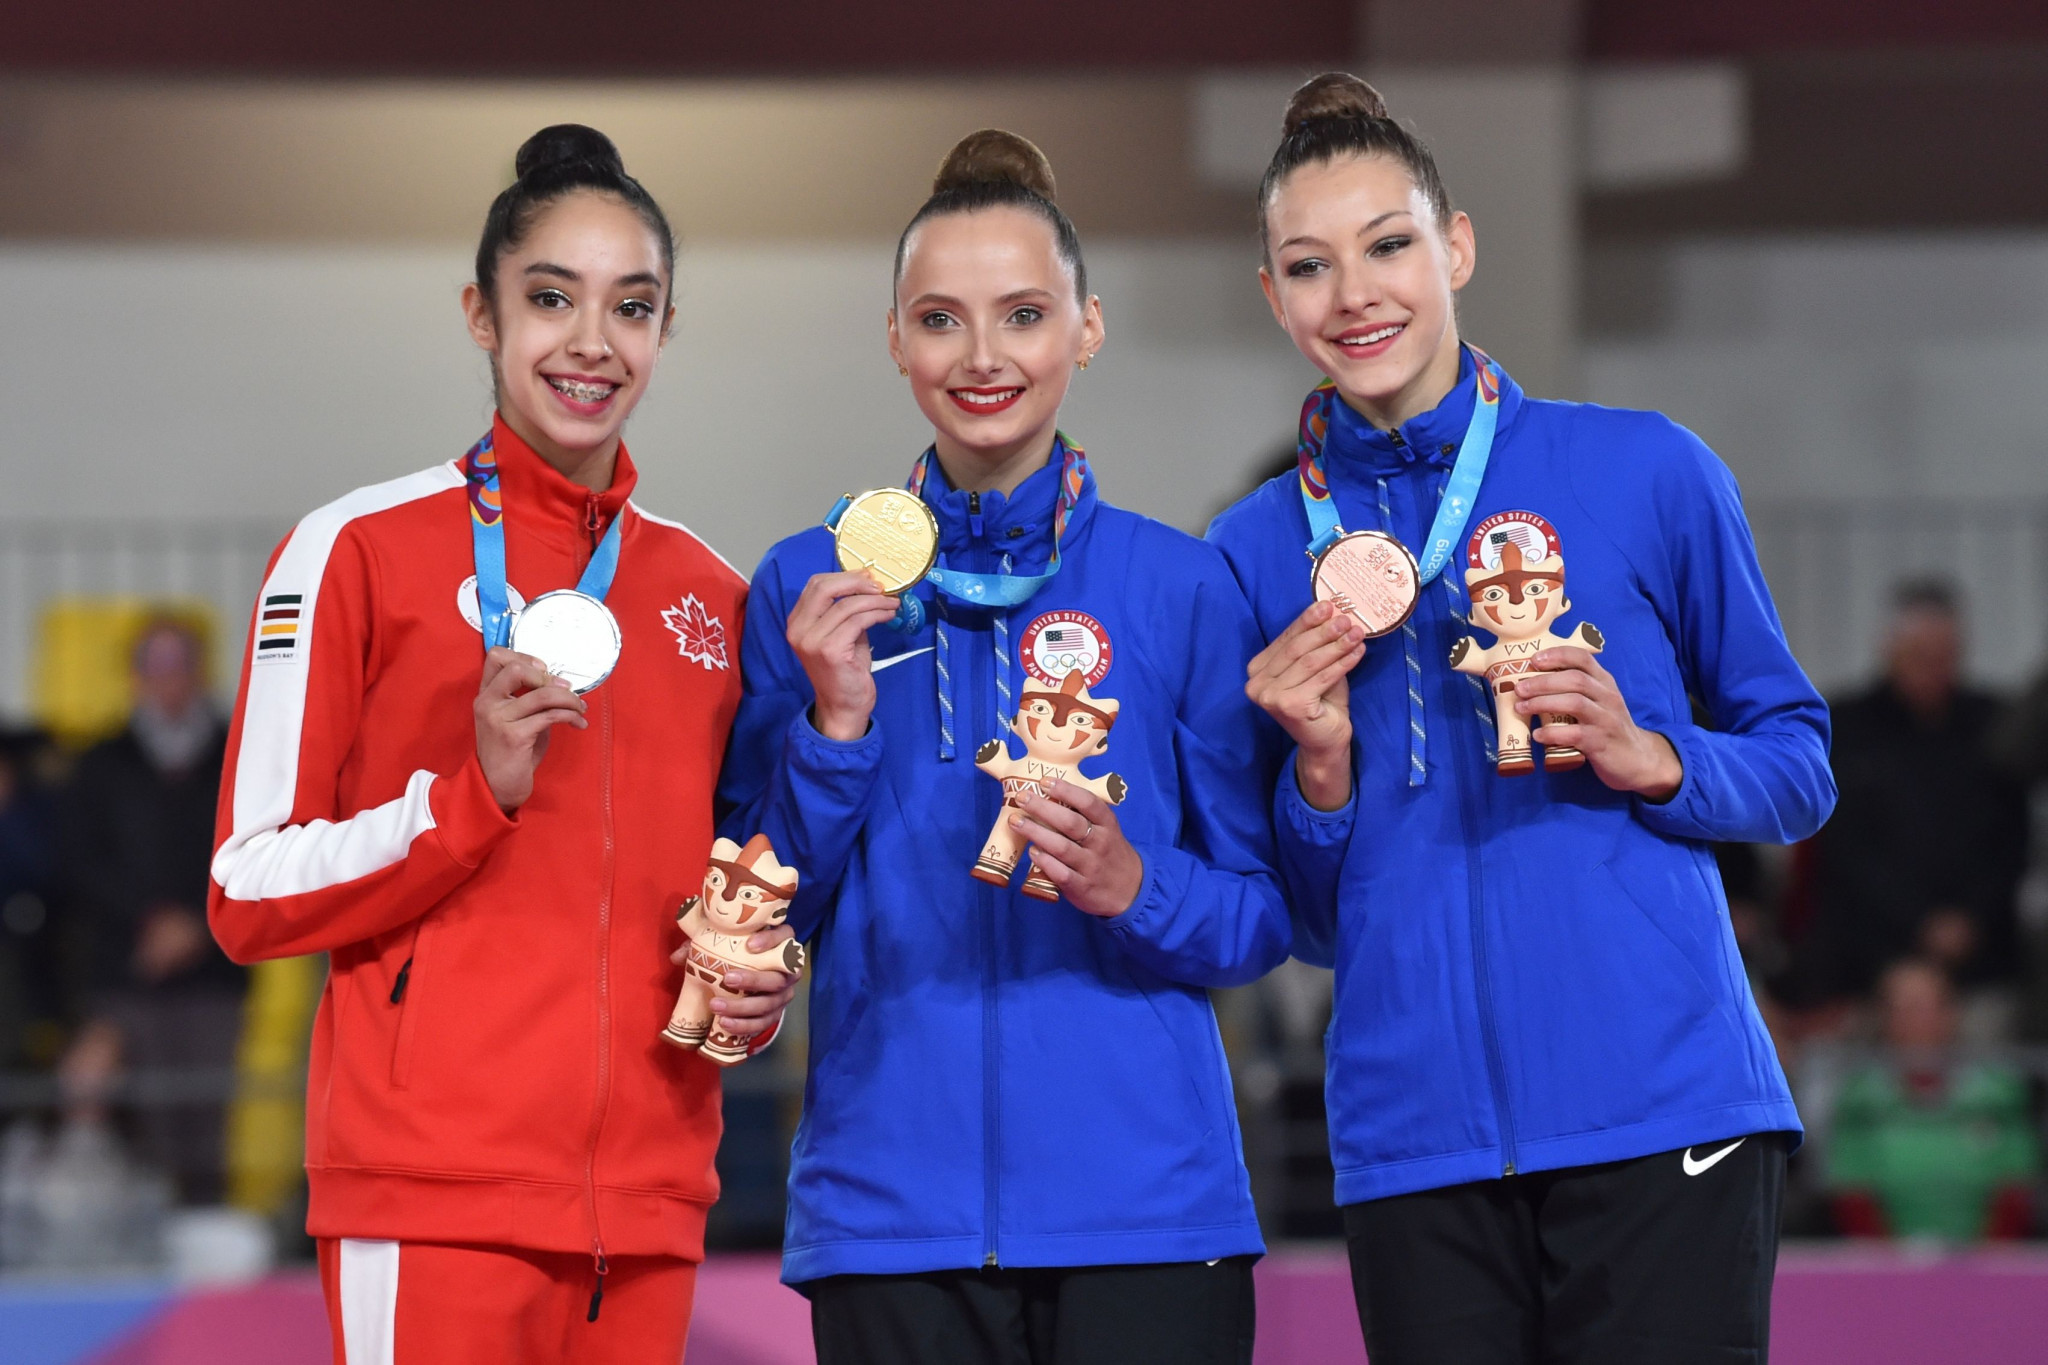 Feeley finally tops rhythmic gymnastics podium after earlier disappointment at Lima 2019